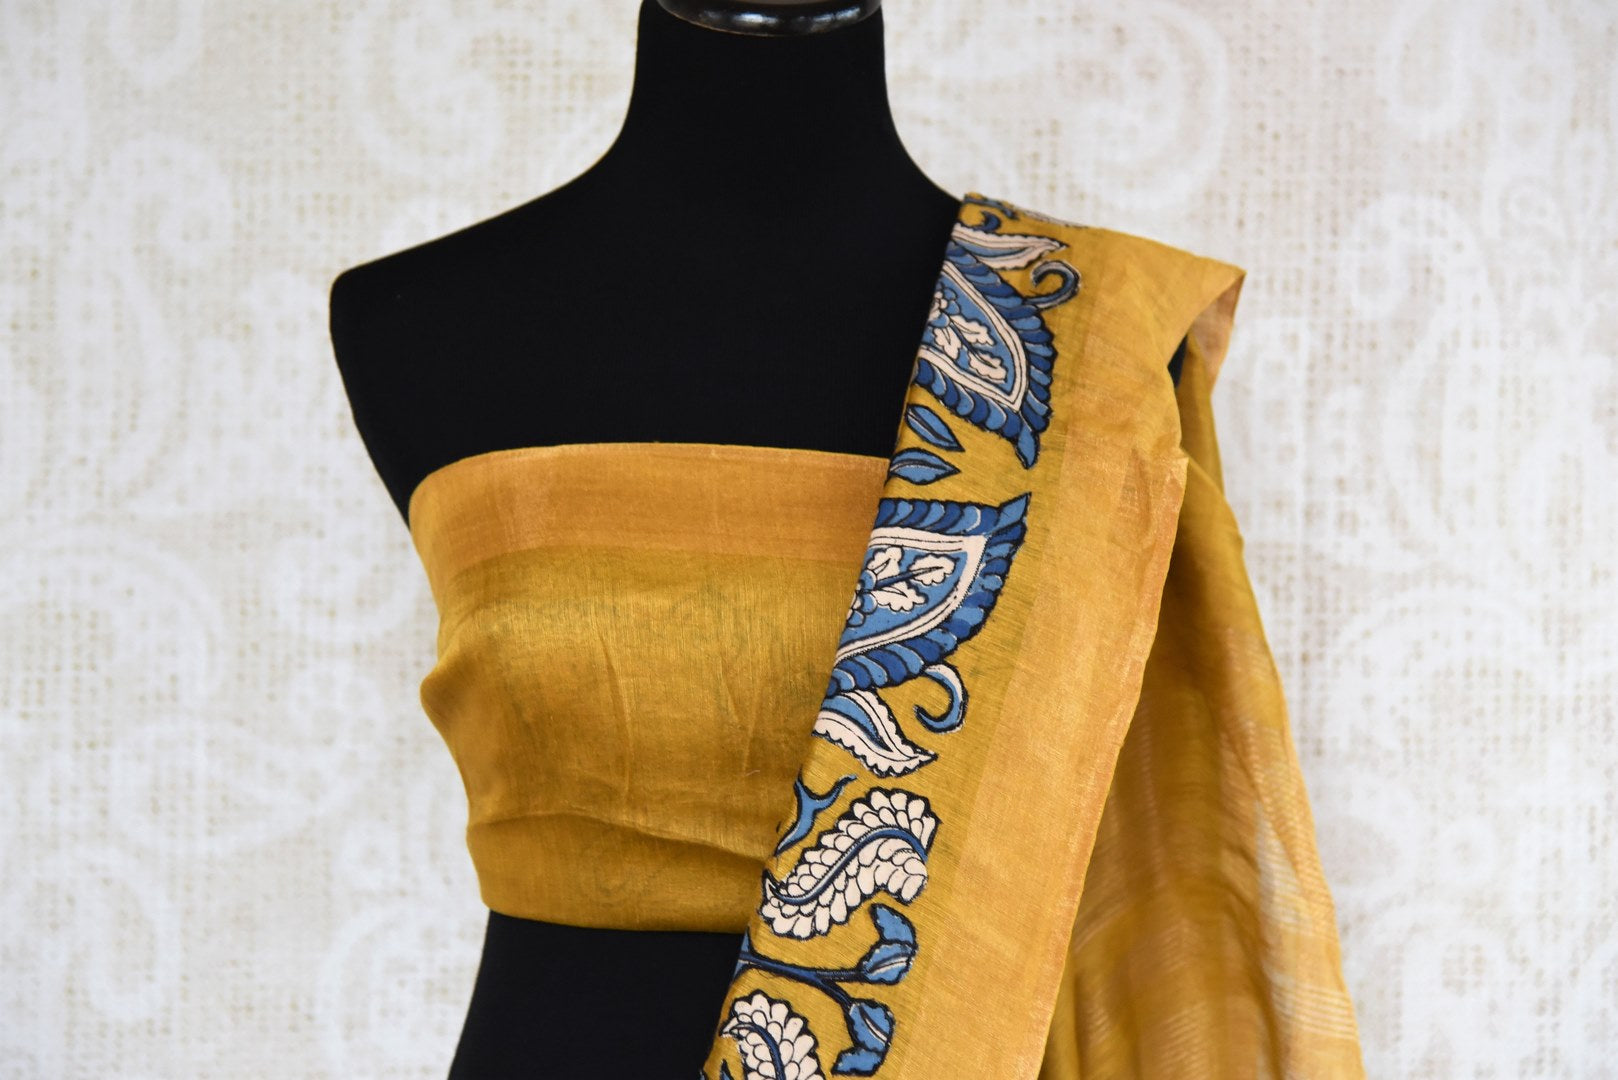 Mustard yellow tussar silk saree buy online in USA with Kalamkari applique work. Beautifully designed woven saree is a graceful choice for special occasions. Shop Indian handloom saris, silk sarees in USA from an alluring collection available at Pure Elegance fashion store.-blouse pallu